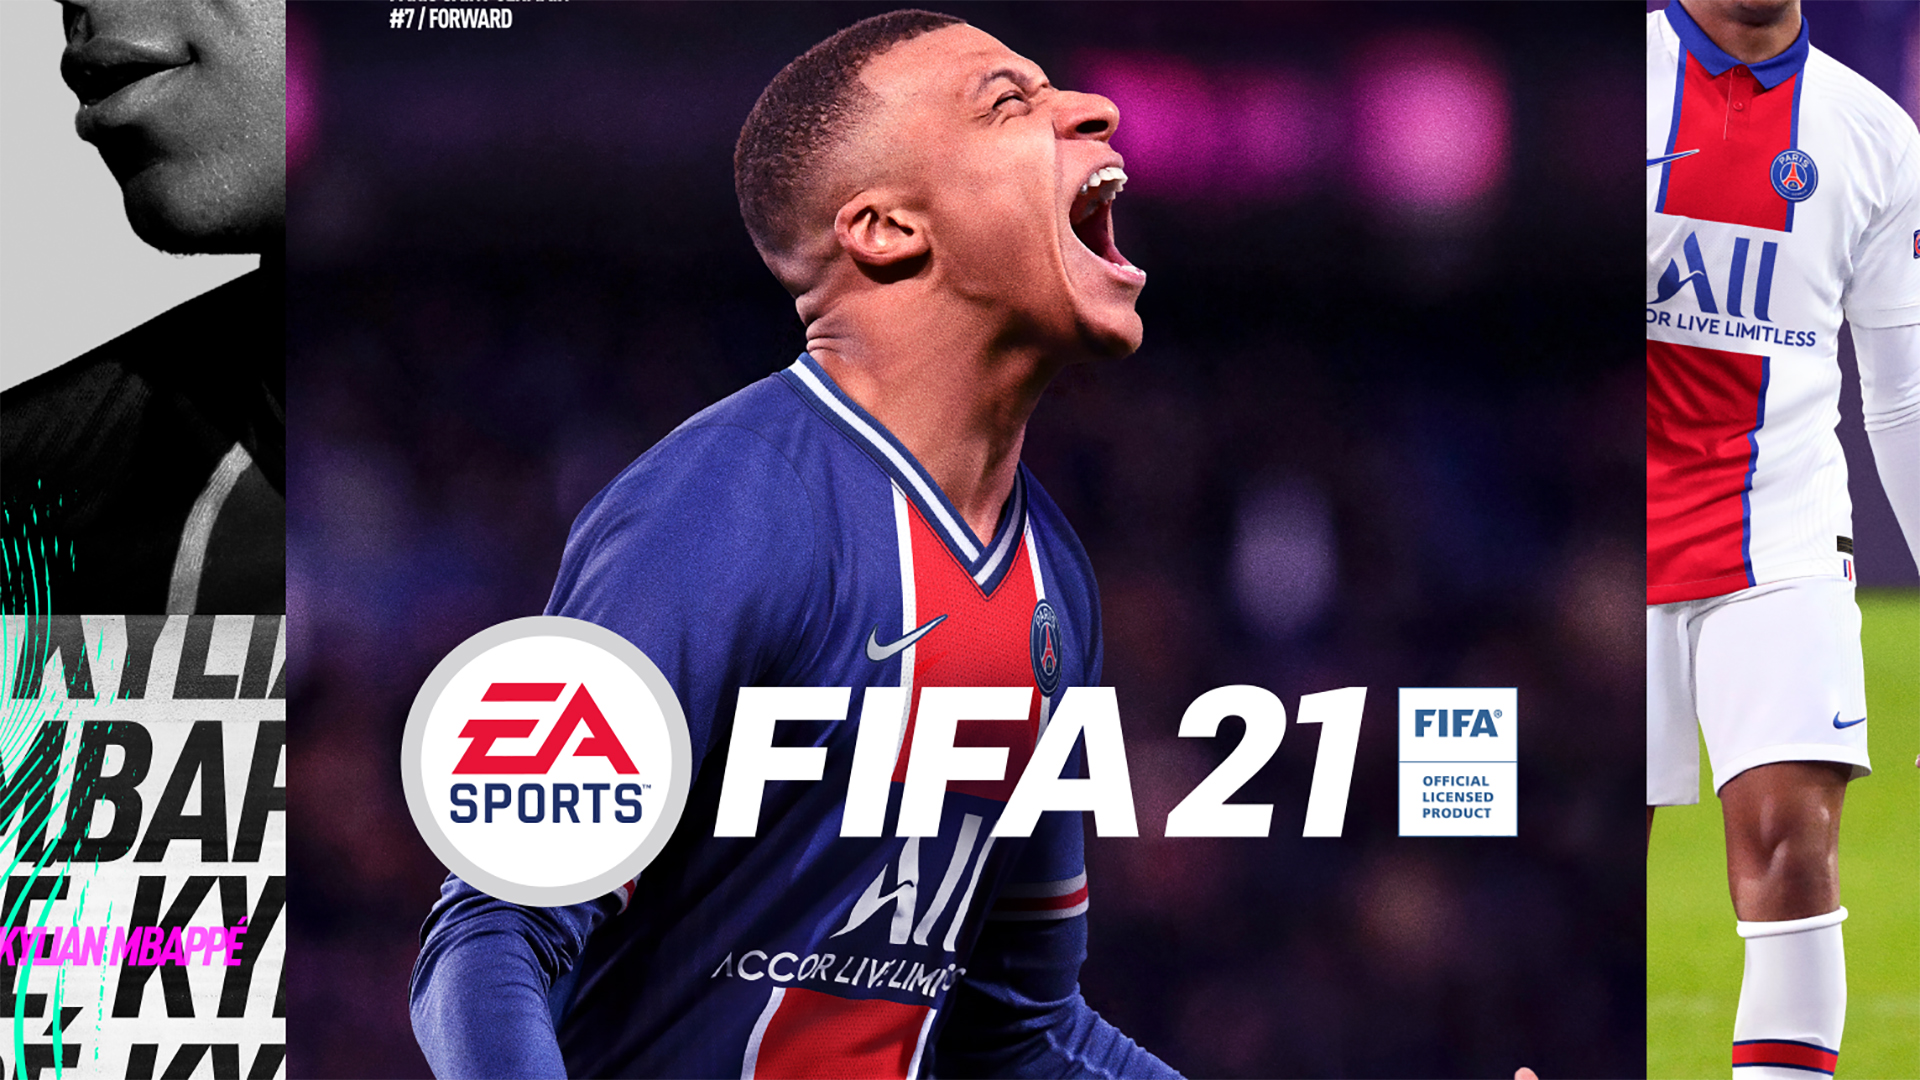 FIFA 21: No demo for upcoming game, EA Sports confirm | Goal.com